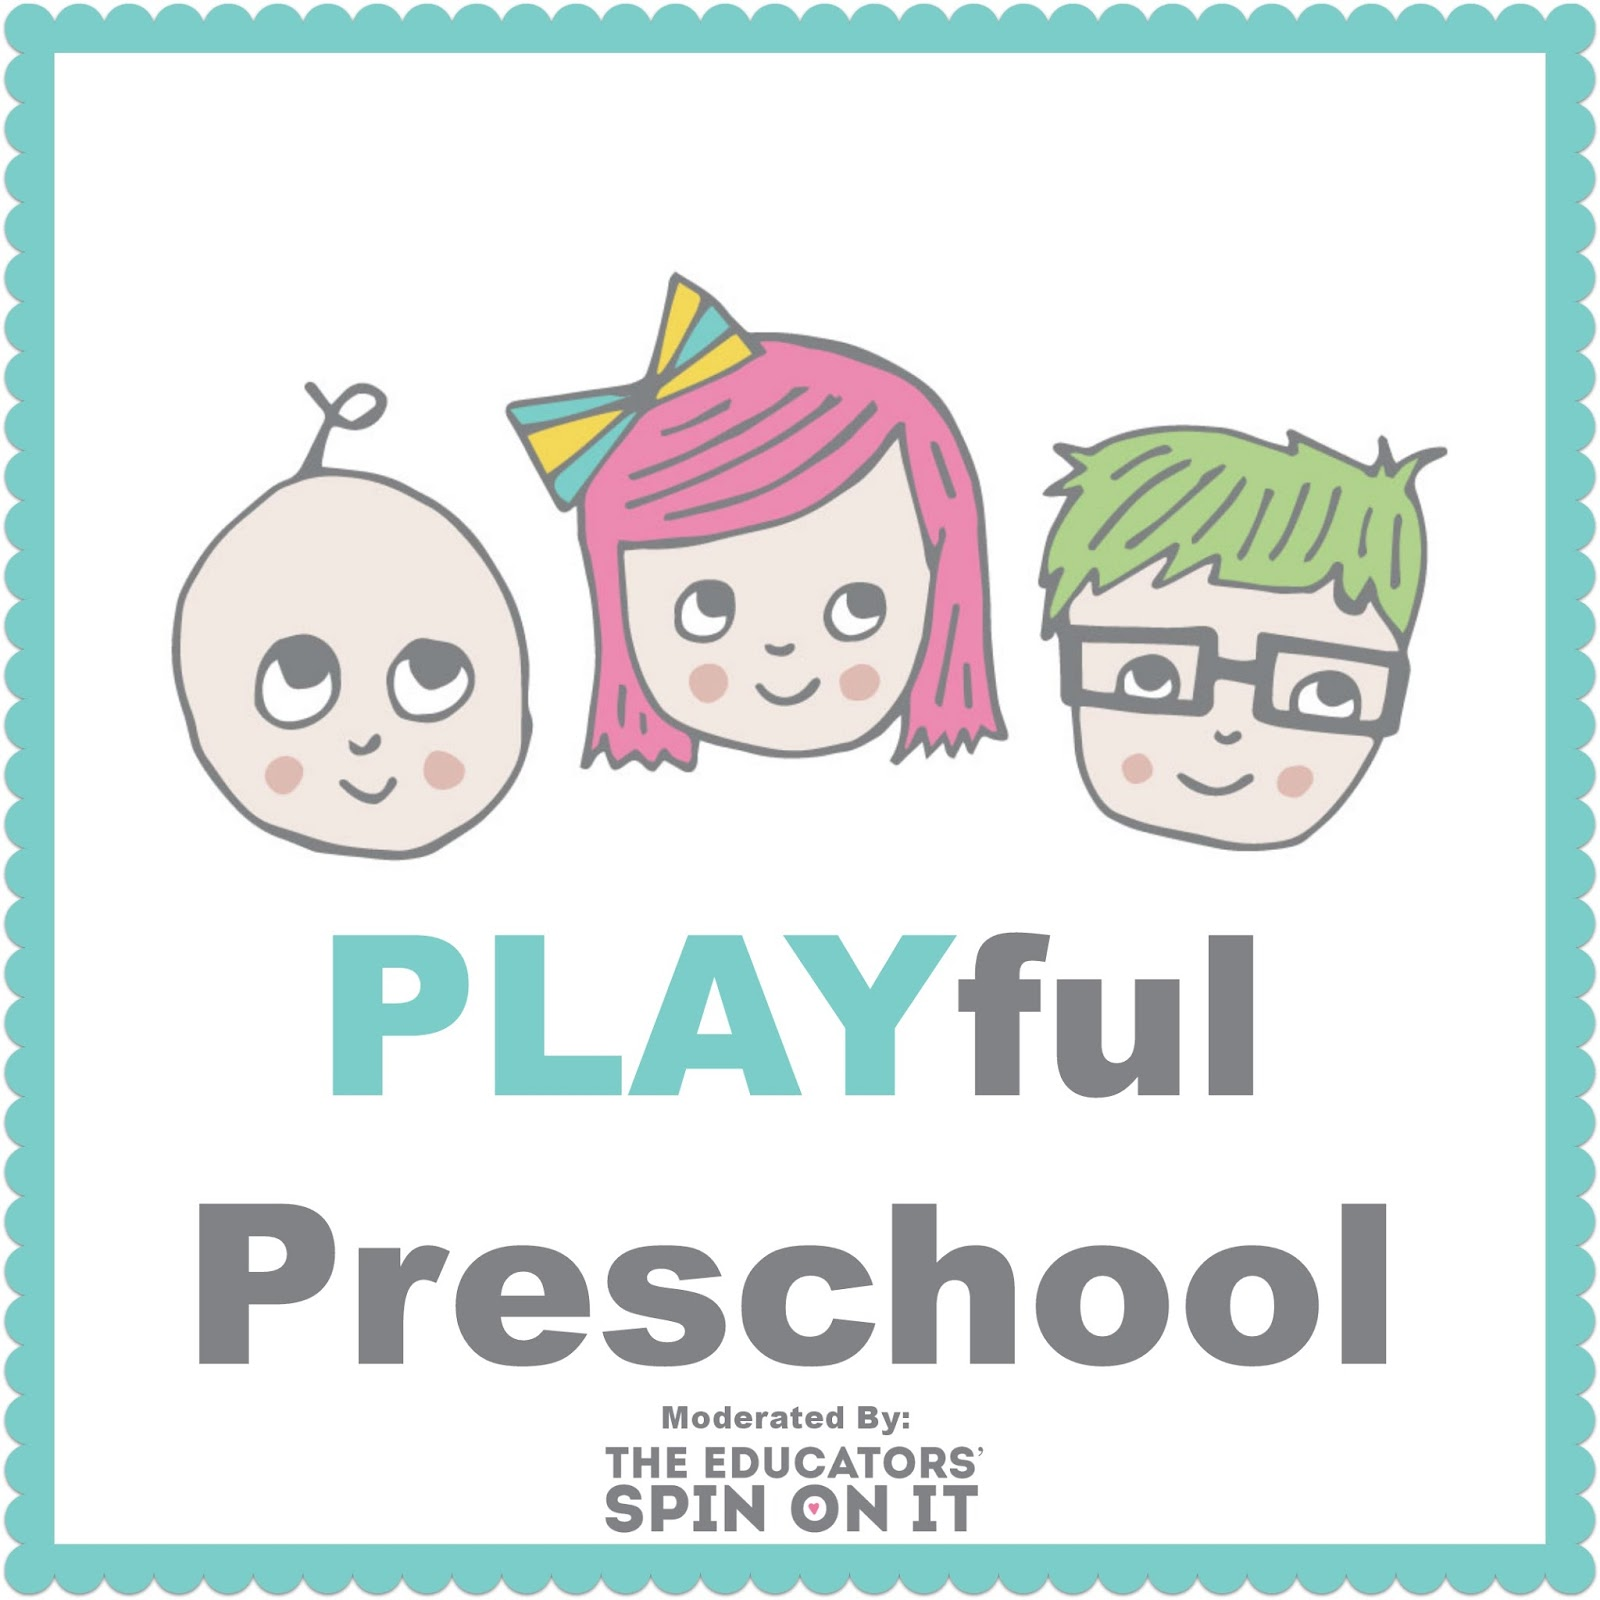 Playful Preschool